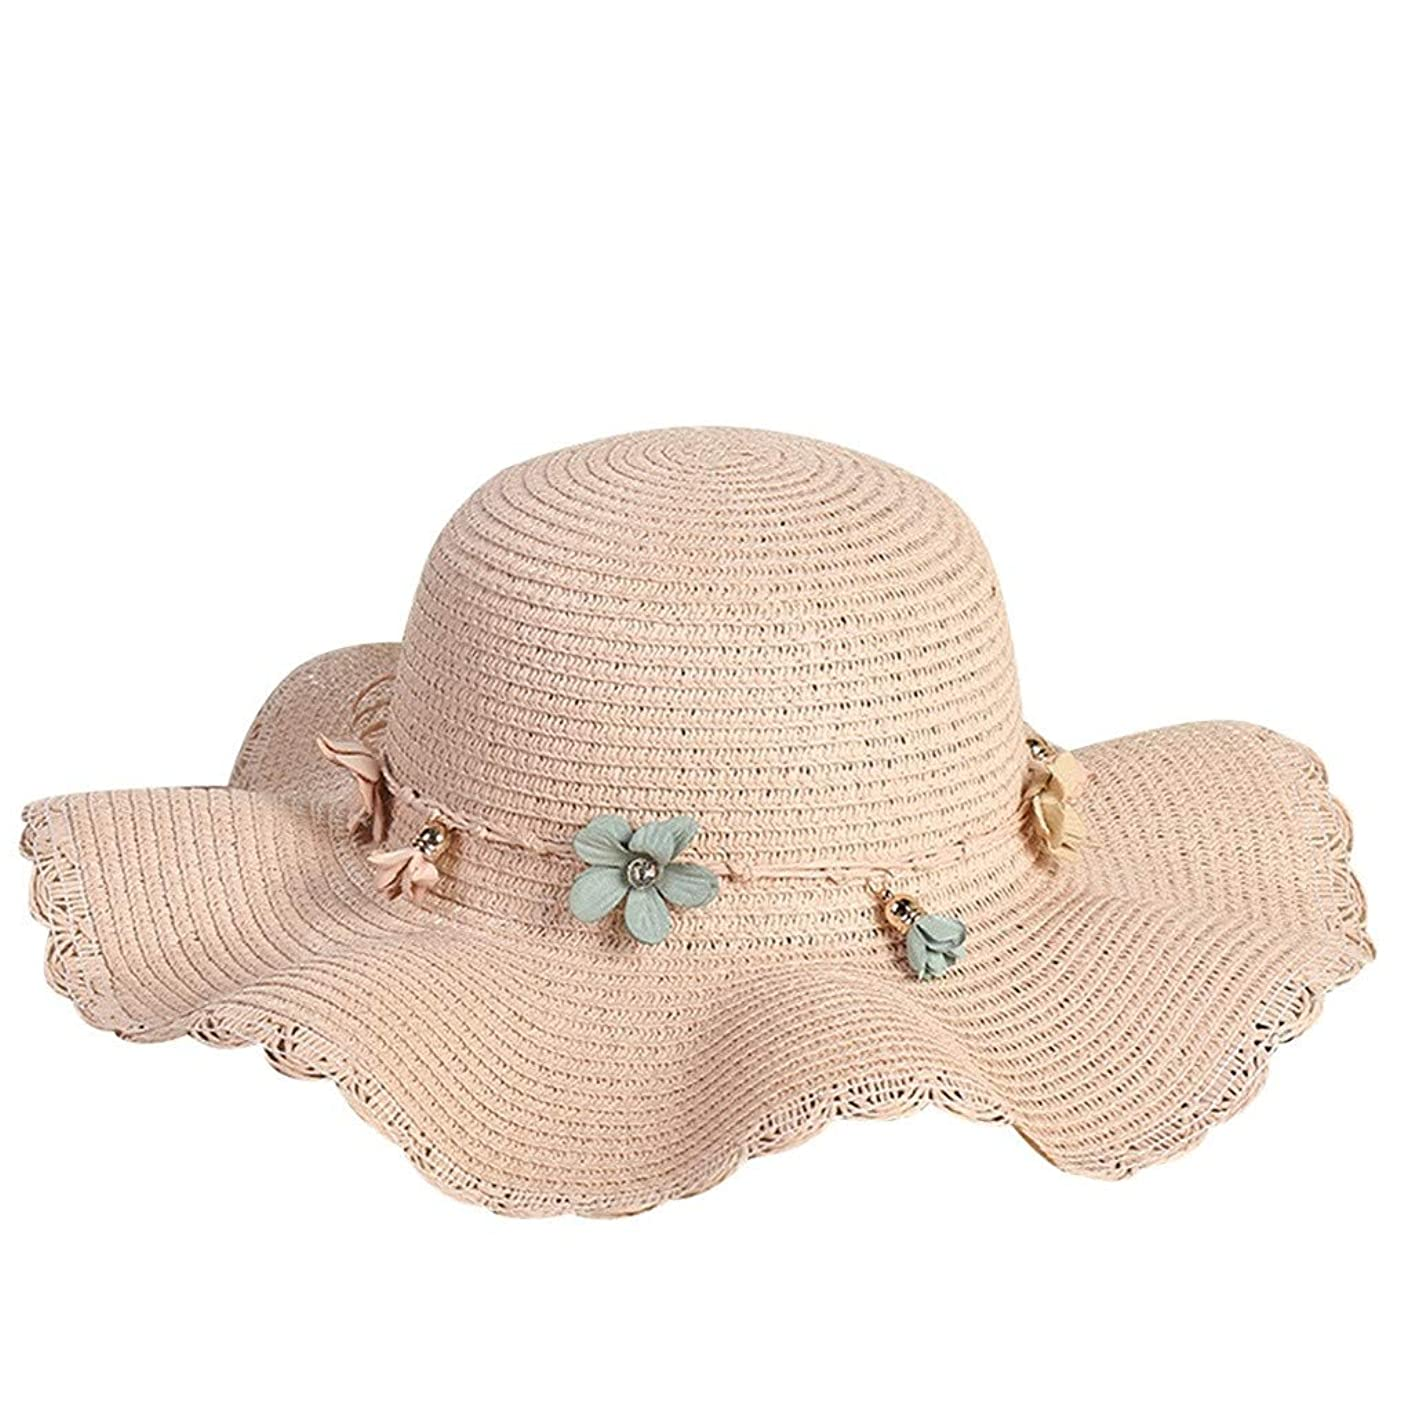 hositor Hats for Women, Women's Fashion Summer Beach Hat Outdoor Outing Sunscreen Straw Hat